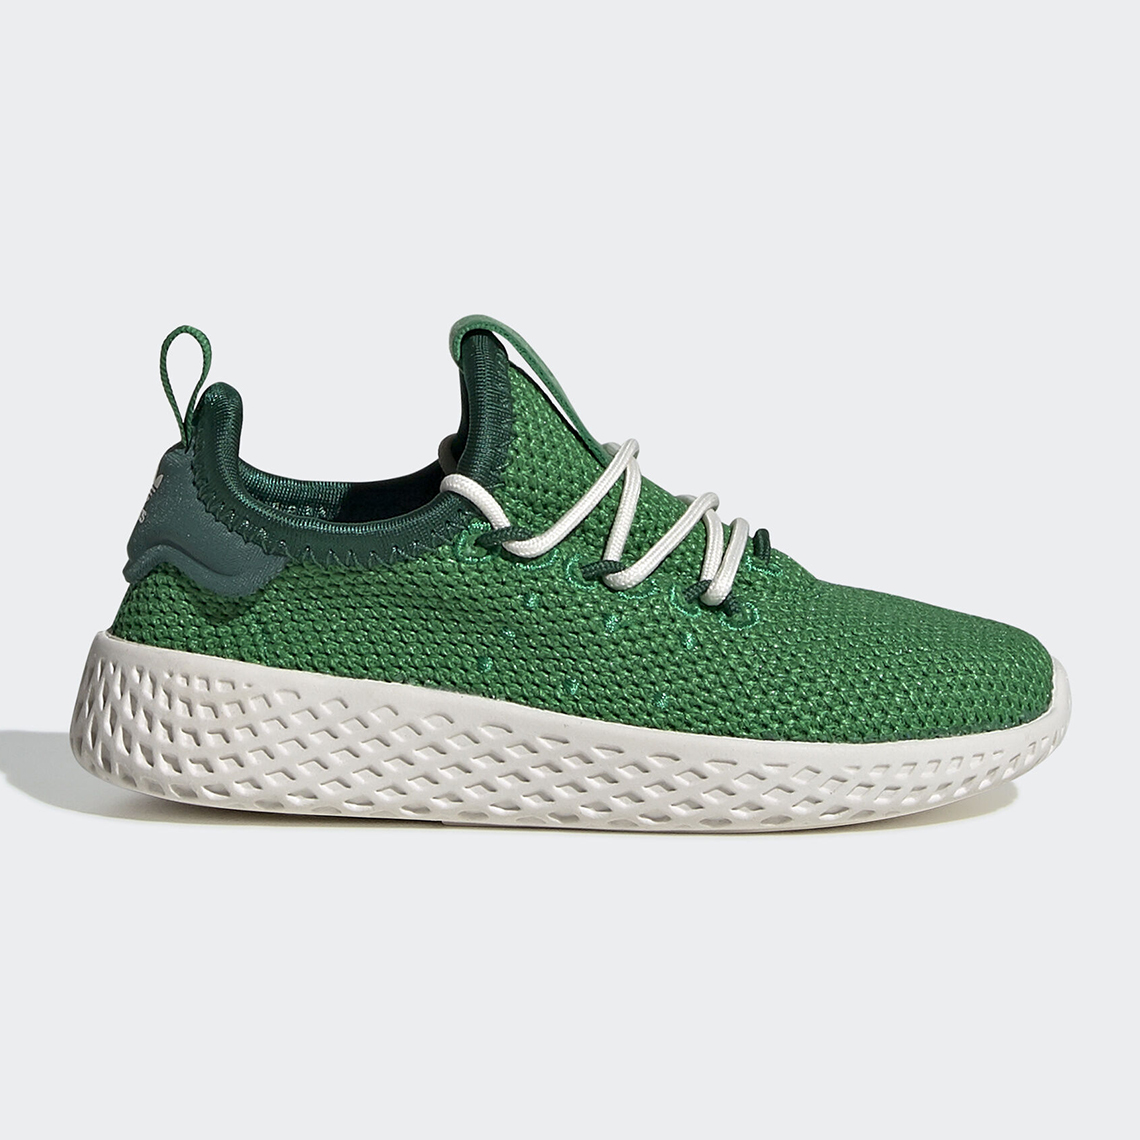 Pharrell adidas Tennis Hu Beauty in the Difference Release